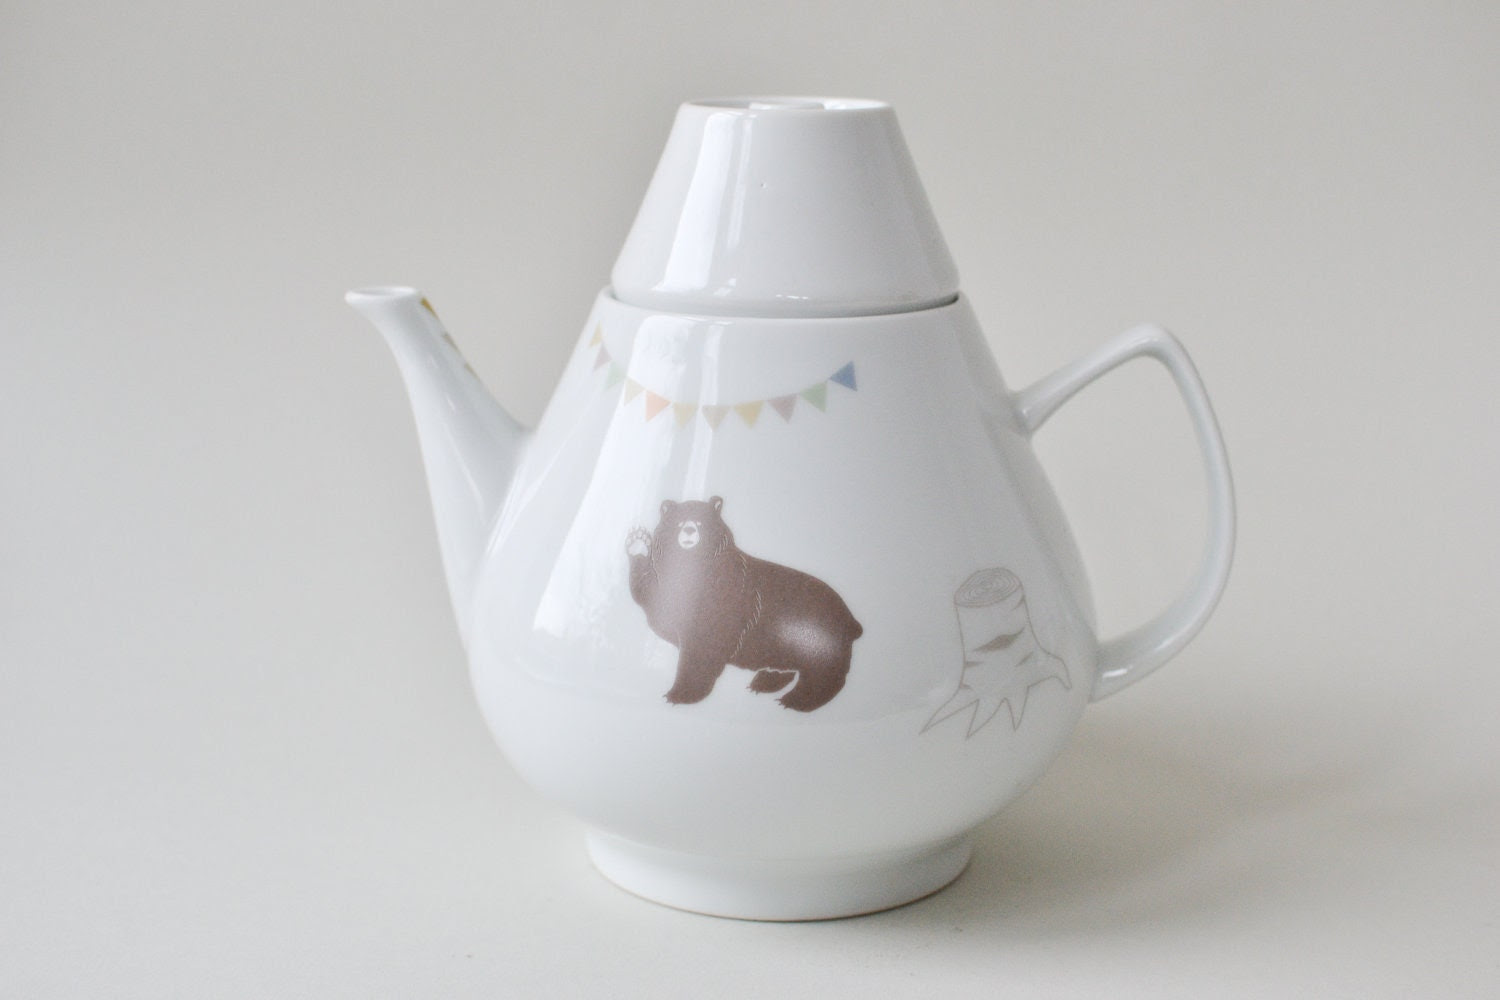 Big fun vintage teapot with bears, trees and banner